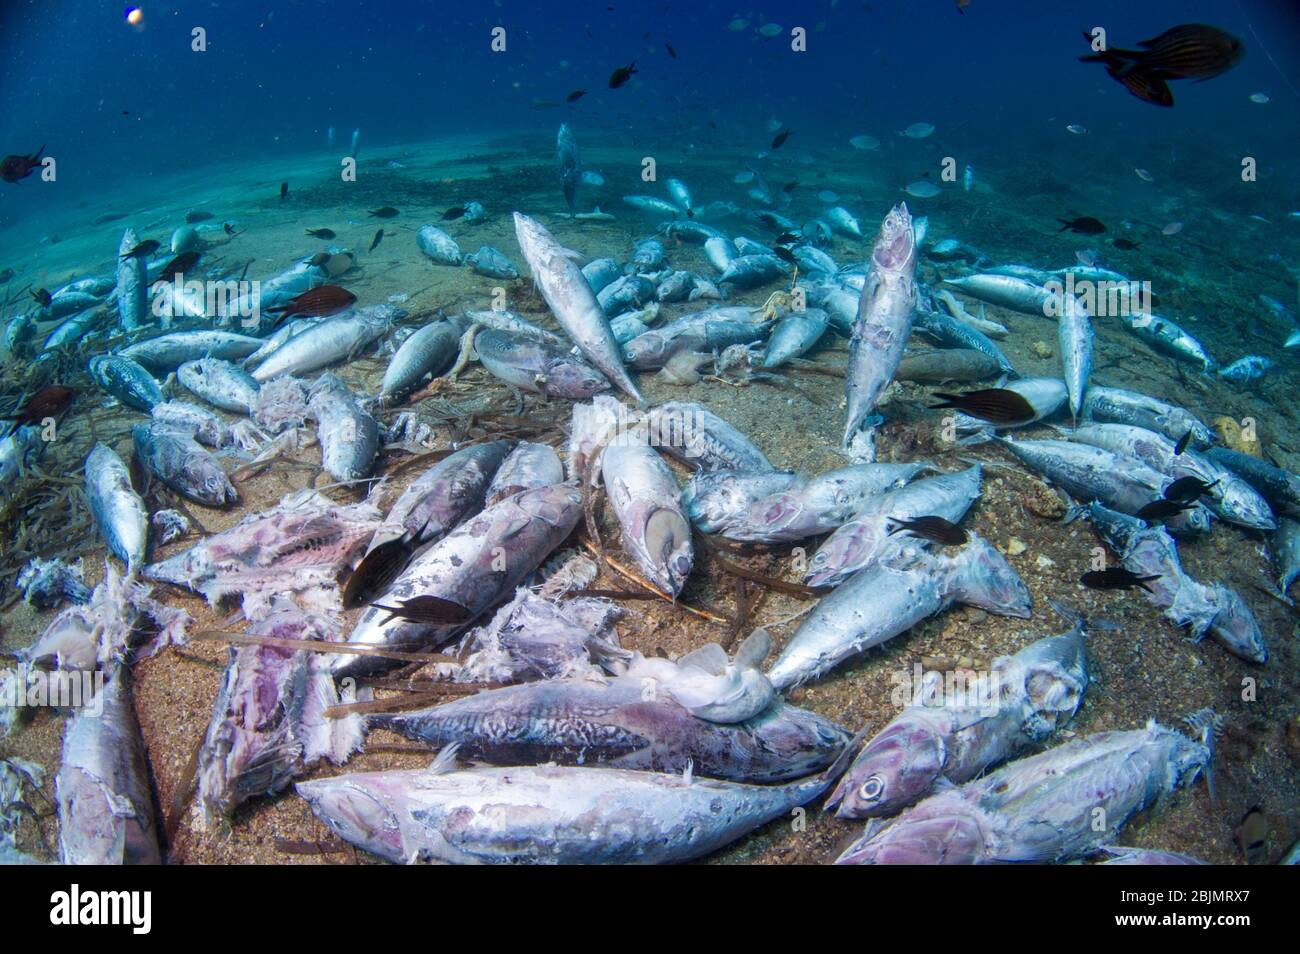 You won't find nobody else like me. Sea Bottom Dead Fishes Under Fishing Boats When Nets Are Recovered After Long Storm Sardegna Italy Stock Photo Alamy